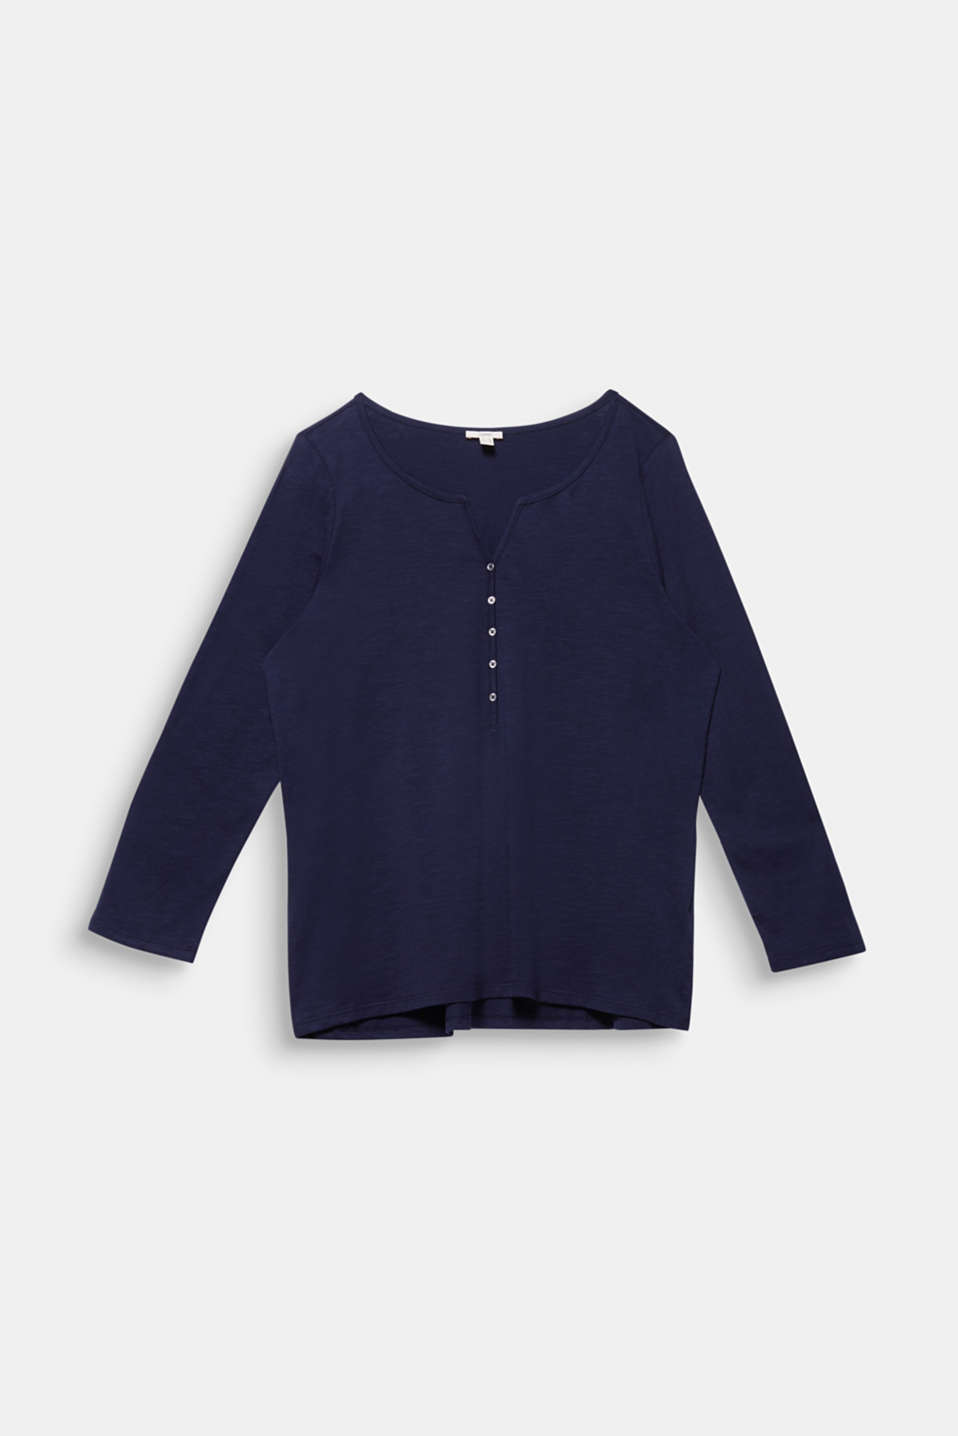 CURVY long sleeve top, organic cotton, NAVY, detail image number 5